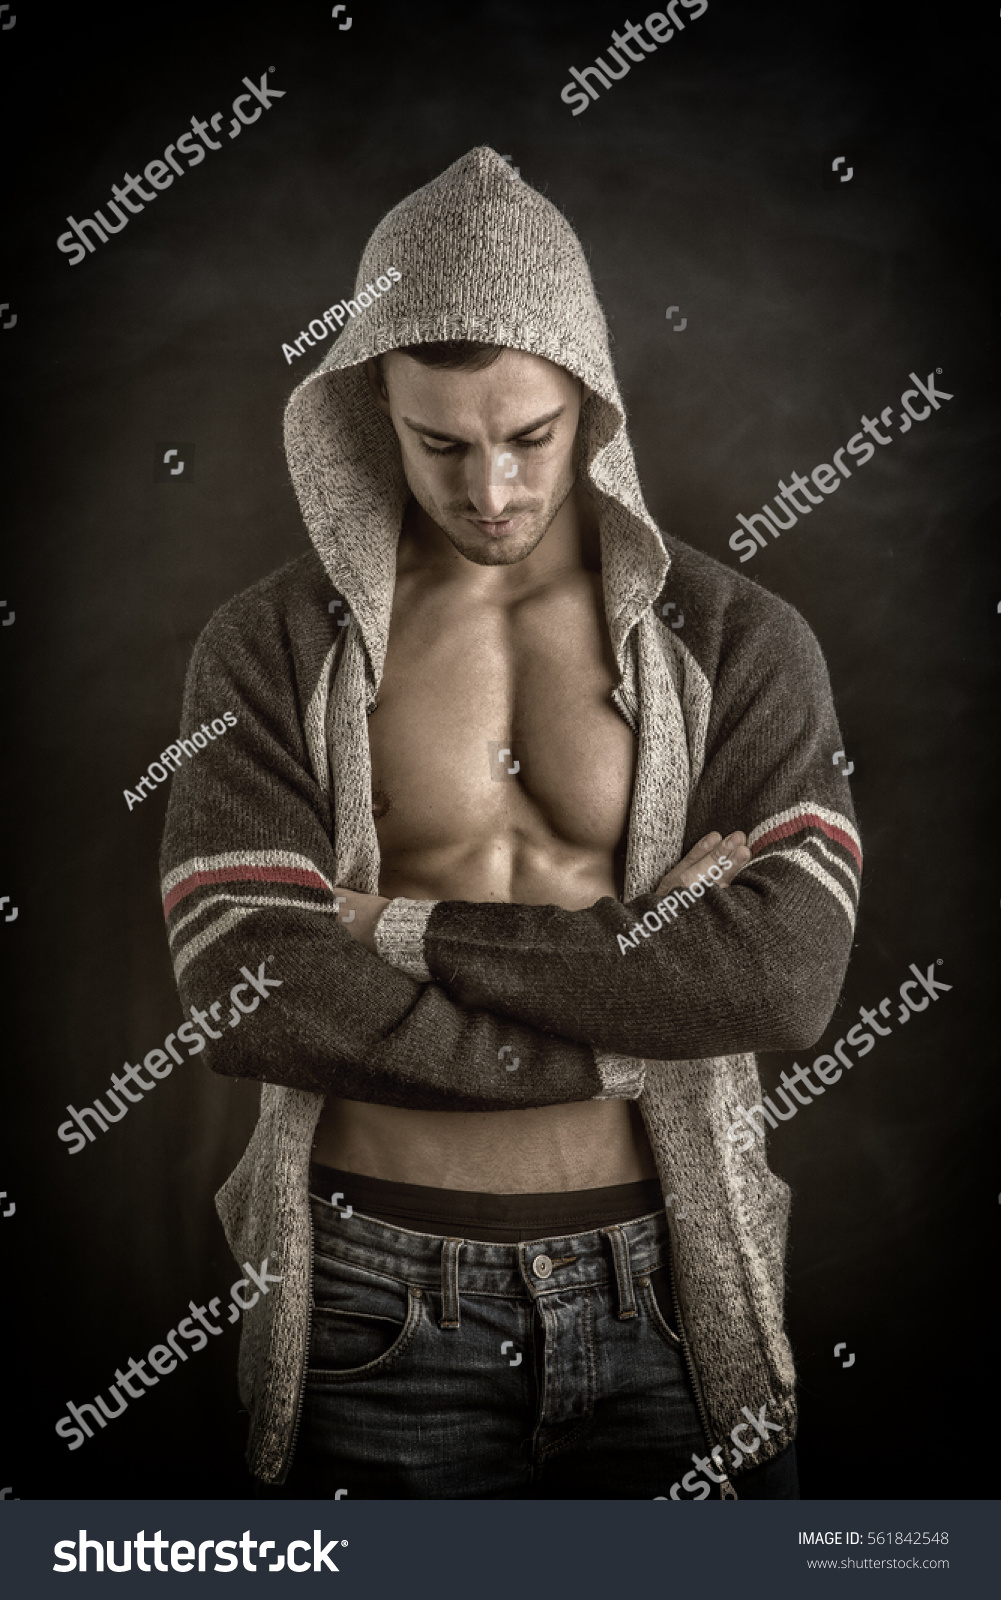 Confident, Attractive Young Man With Open Sweater On